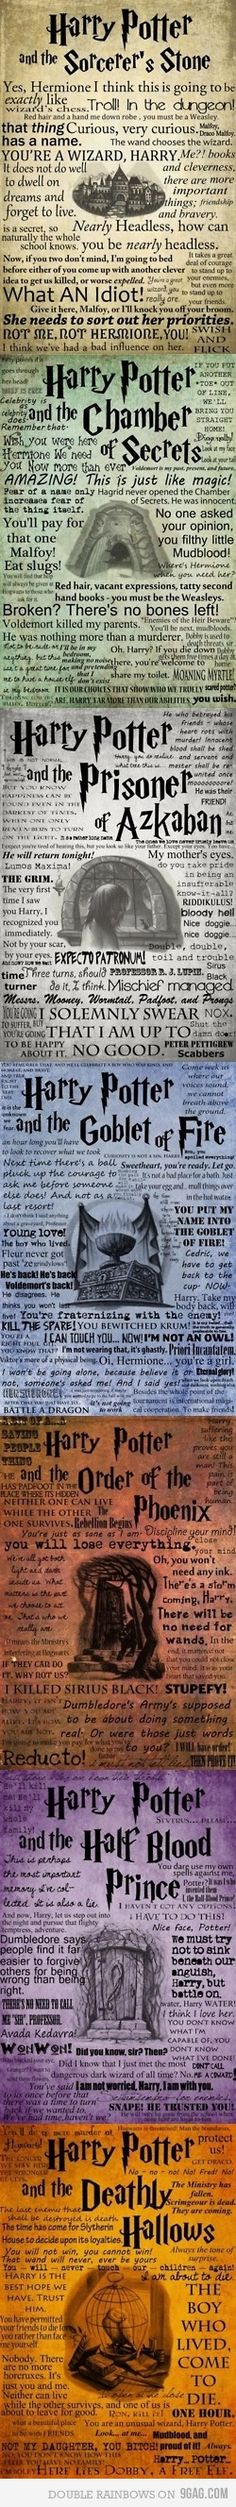 I love me some Harry Potter! Famous quotes from every book.